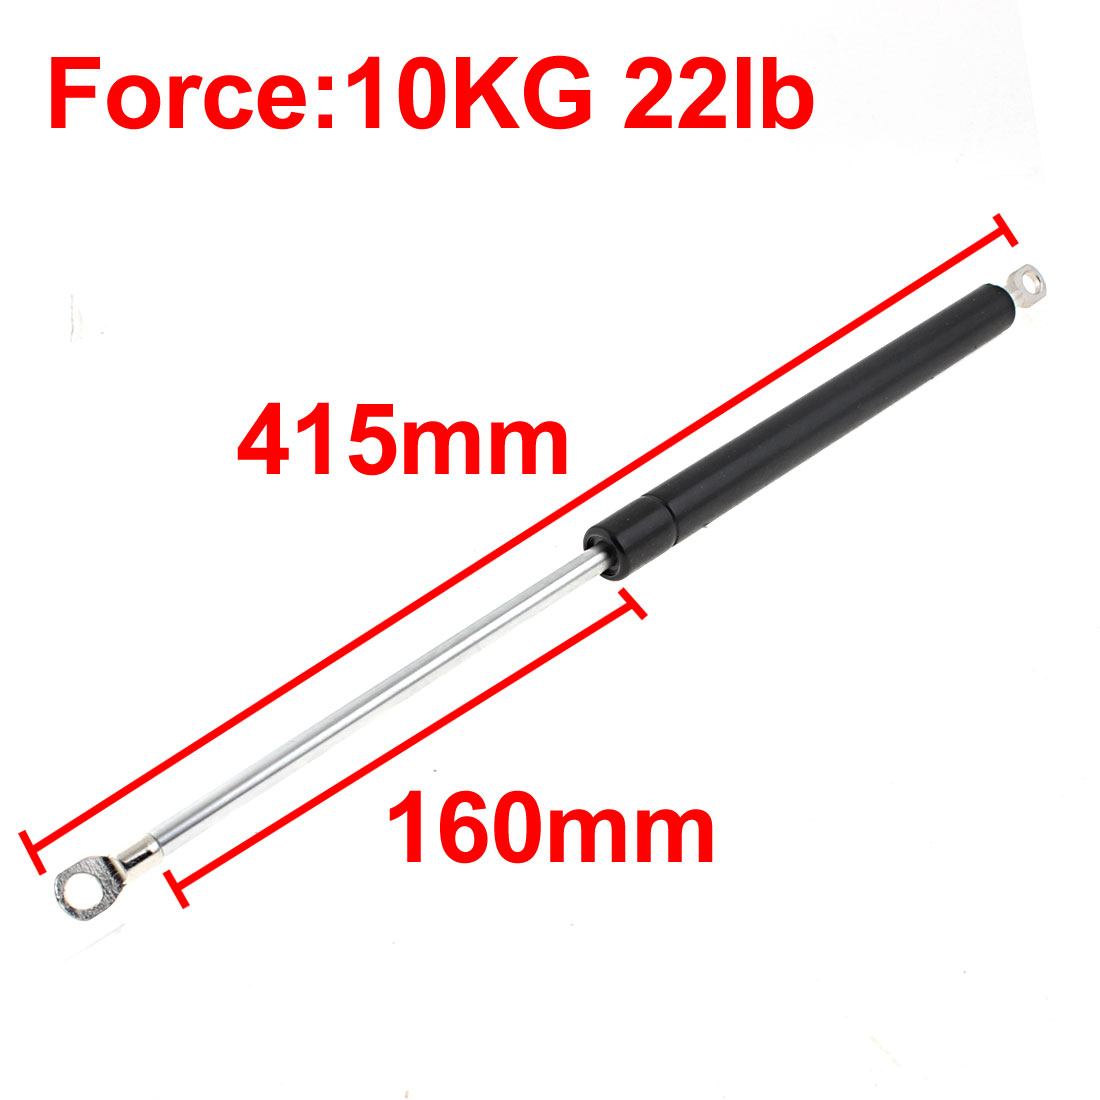 UXCELL 10Kg 22Lb Force Car Auto Lift Support Gate Hatch Door Shock Damper Gas Spring 415Mm Length